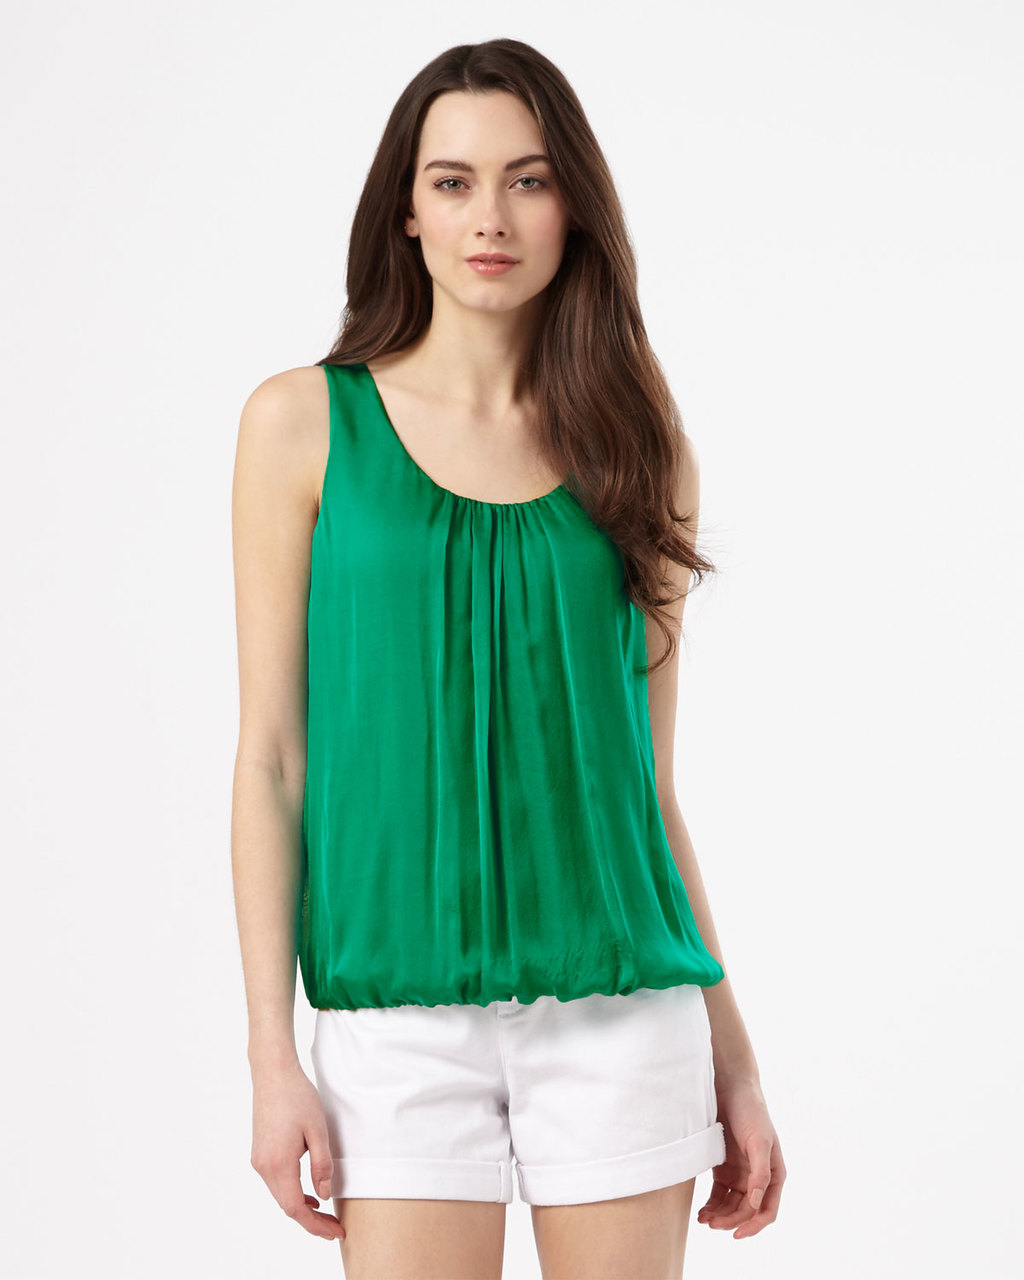 Lua Silk Blouse - sleeve style: standard vest straps/shoulder straps; pattern: plain; style: vest top; predominant colour: emerald green; occasions: casual; length: standard; neckline: scoop; fibres: silk - 100%; fit: straight cut; sleeve length: sleeveless; texture group: silky - light; bust detail: bulky details at bust; pattern type: fabric; season: s/s 2016; wardrobe: highlight